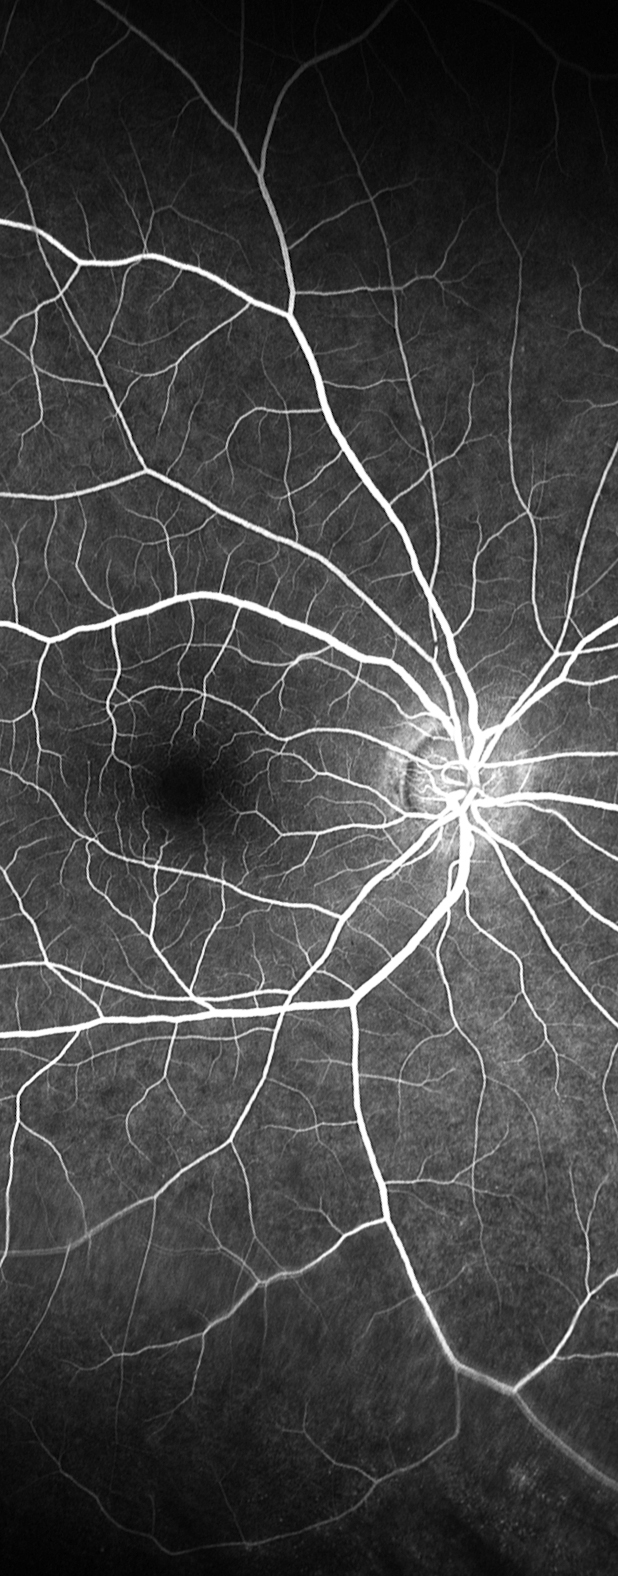 A fluorescein angiography image showing blood flow in the retina of the right eye.